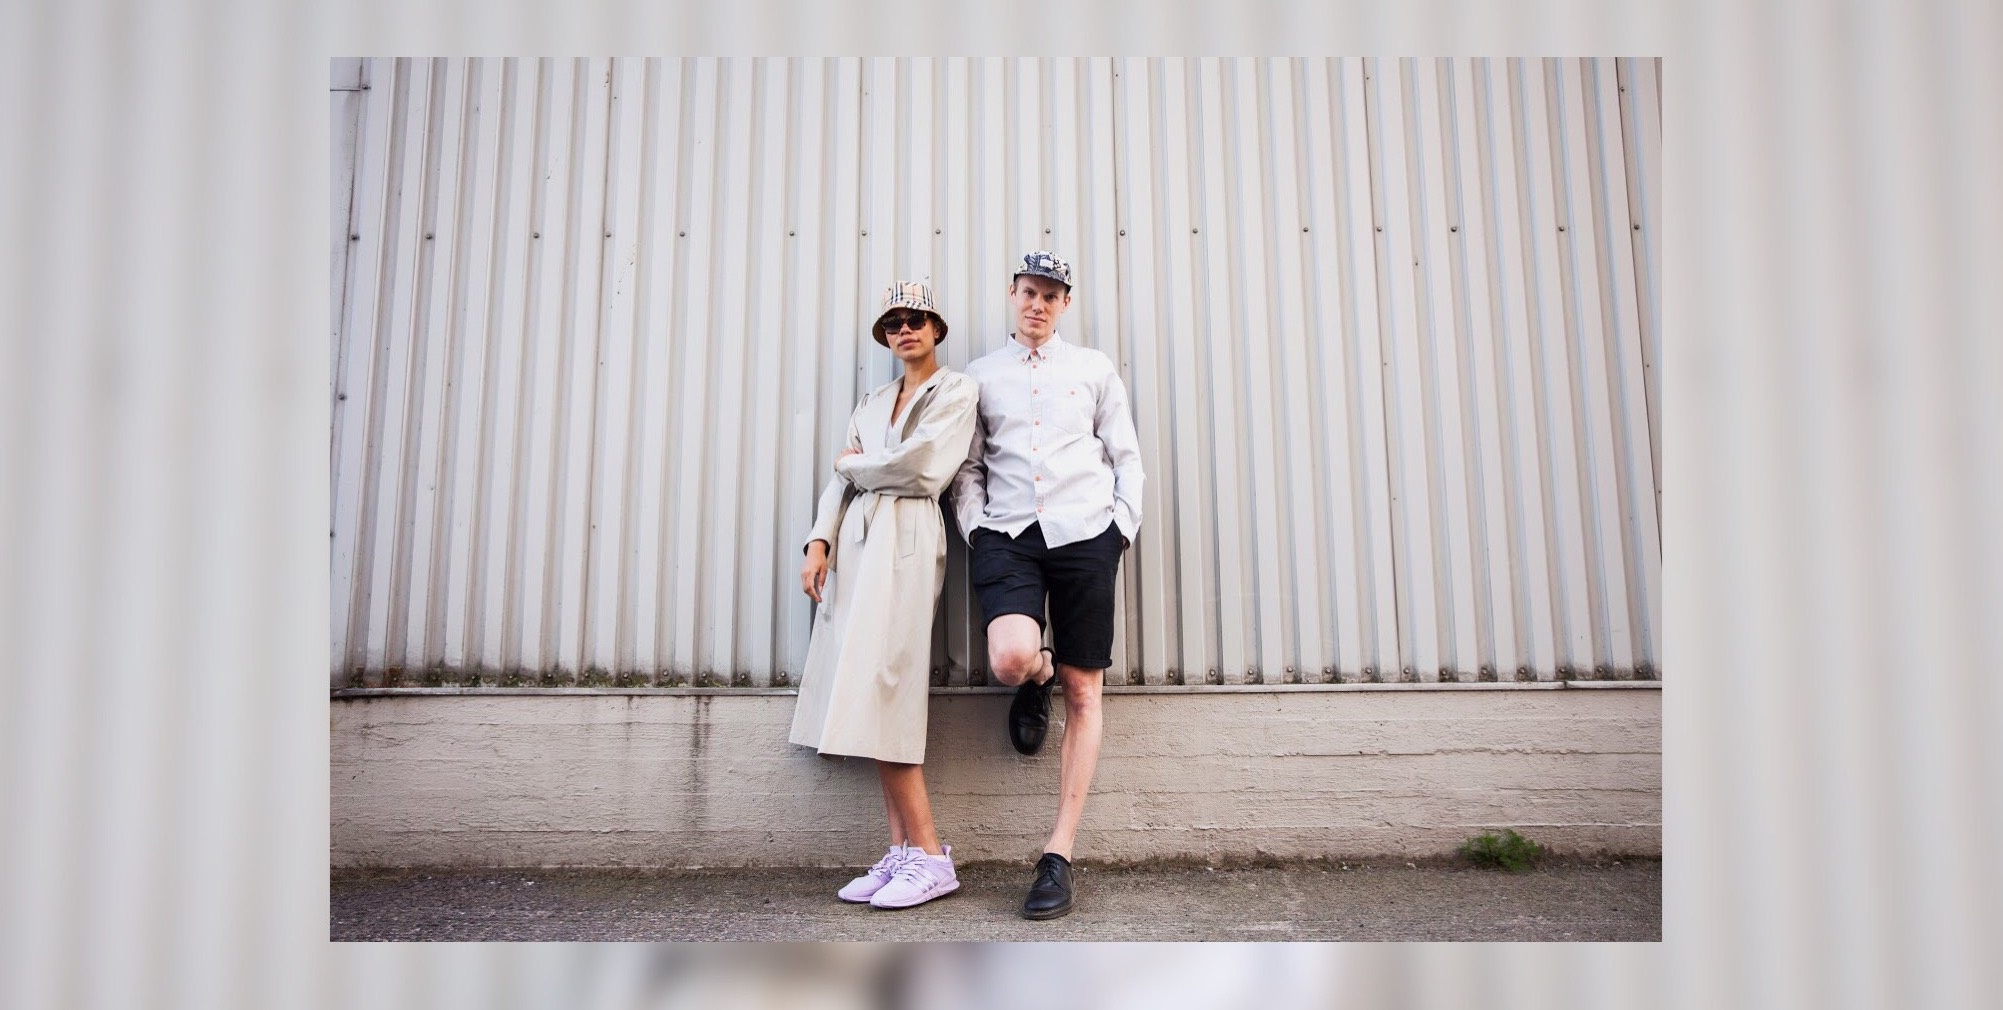 Jessica Benissan and Lauri Hirvonen rocking outfits completely made from pieces found in BSH Helsinki.